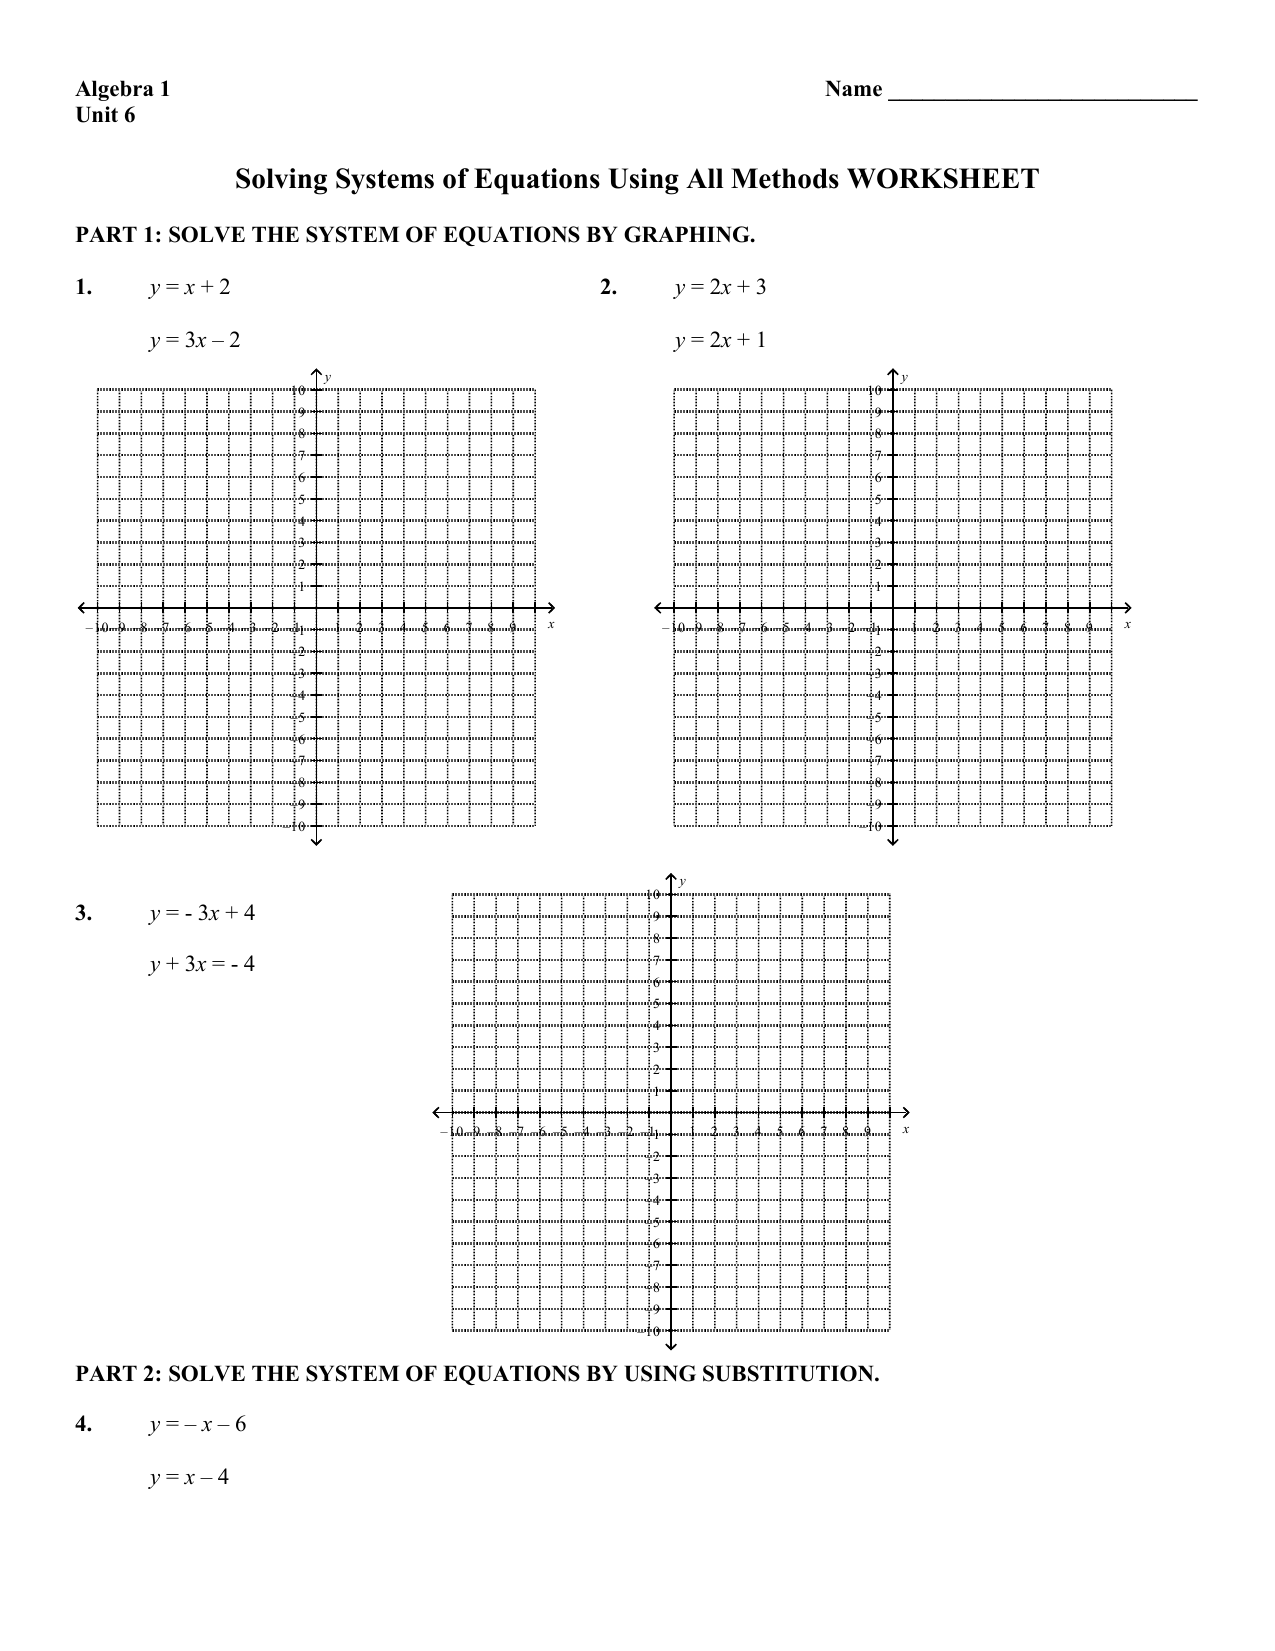 Worksheet Answer Keys Mathconceptualized   Graphing worksheets [ 1651 x 1275 Pixel ]